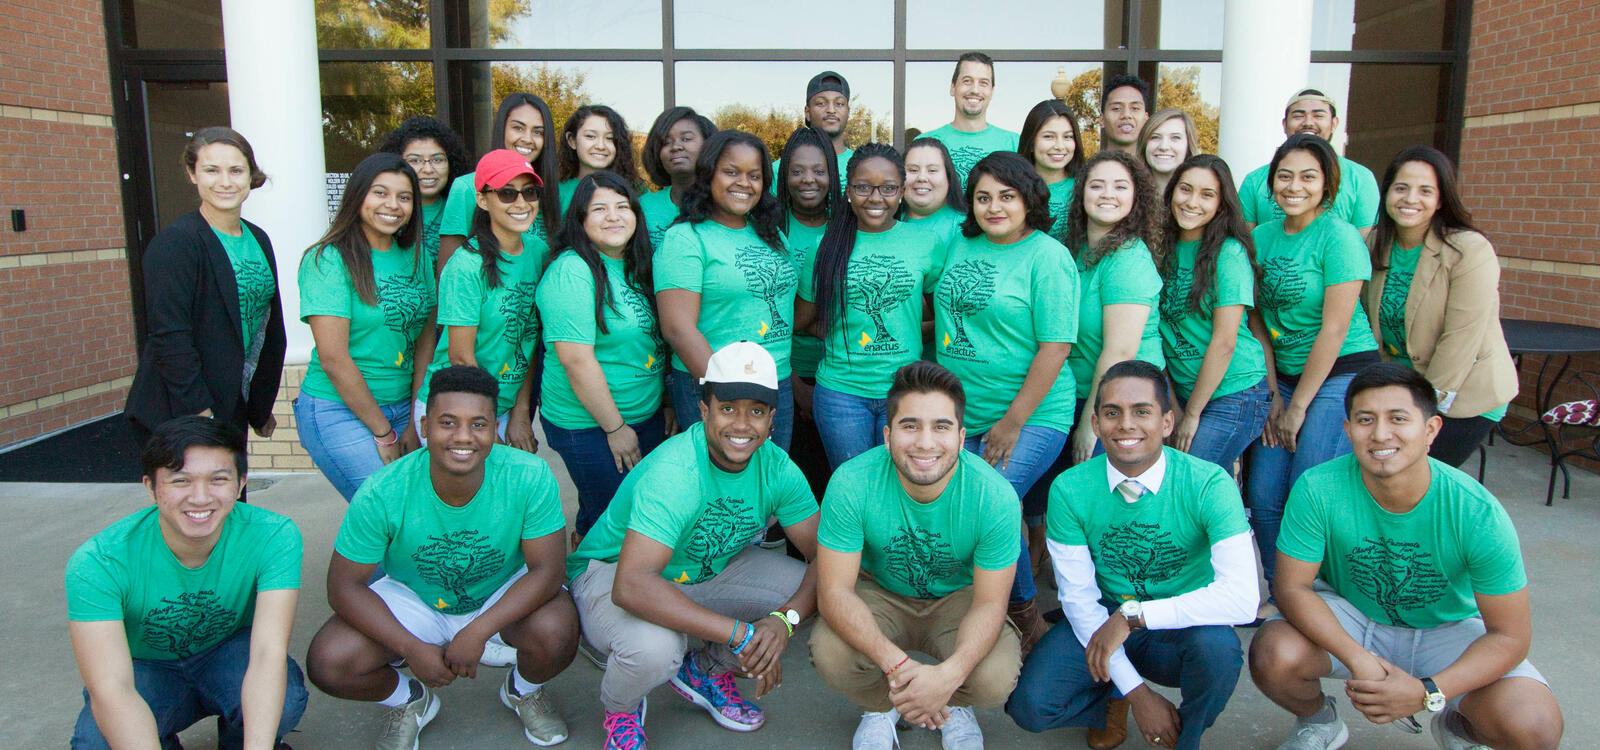 Dressed in matching green t-shirts, a group students stand in four rows and smile